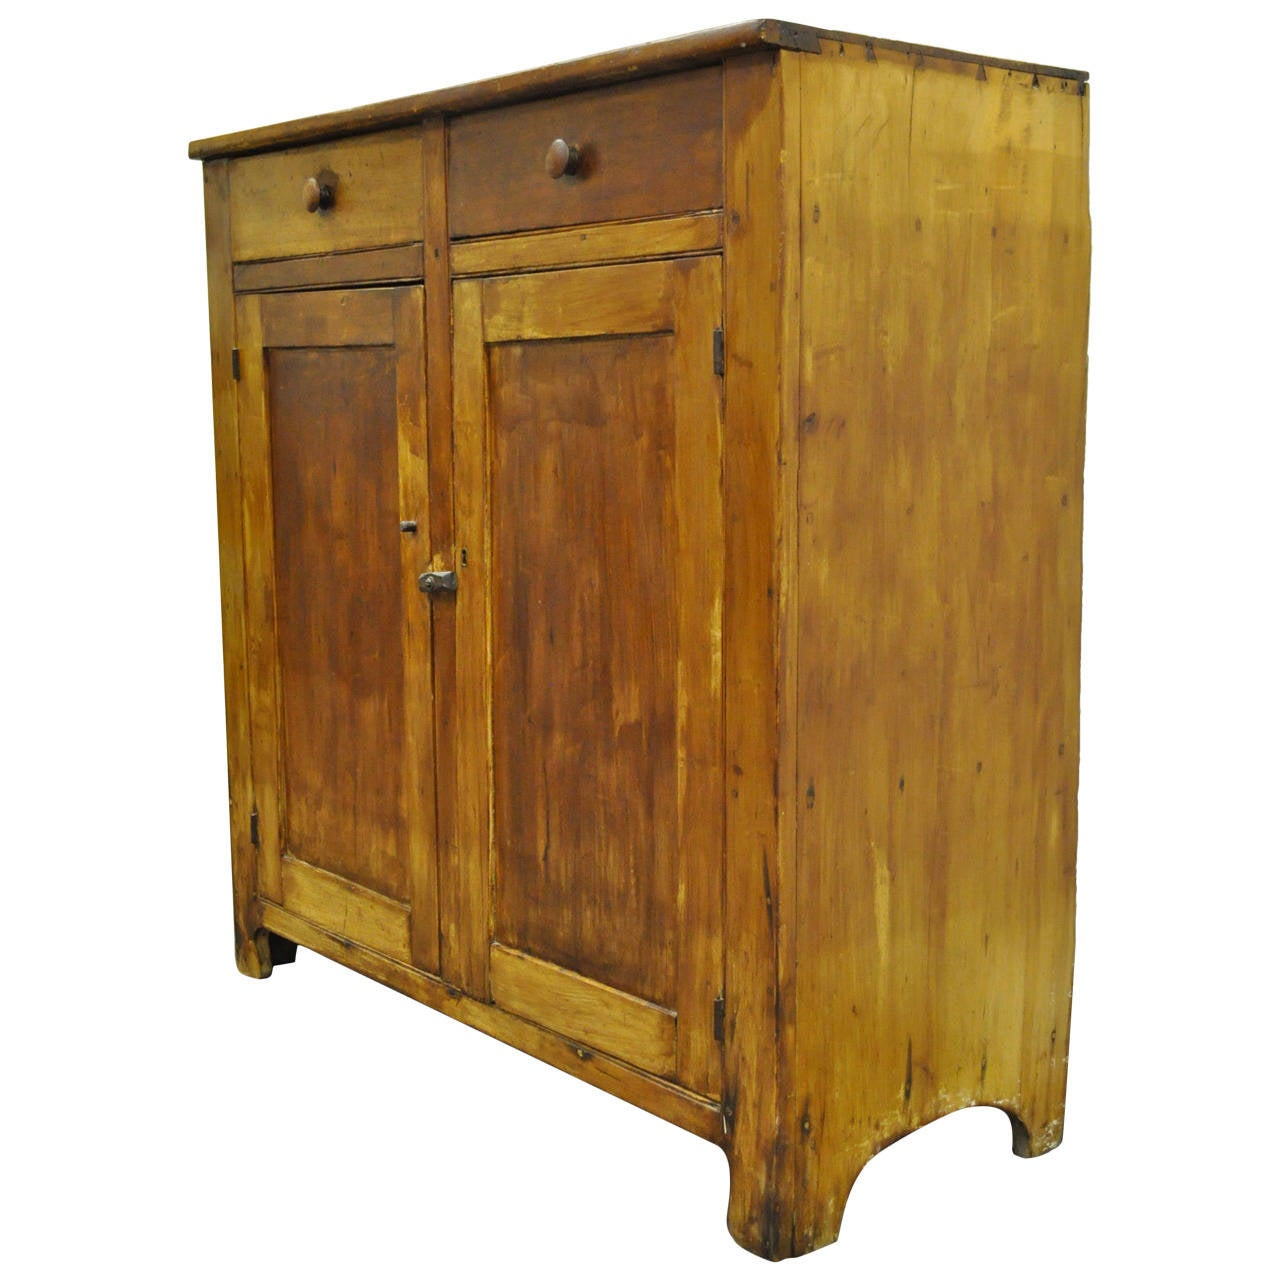 Primitive Rustic Pine Hand Dovetail Joined Jelly Cupboard Pantry Kitchen  Cabinet For Sale